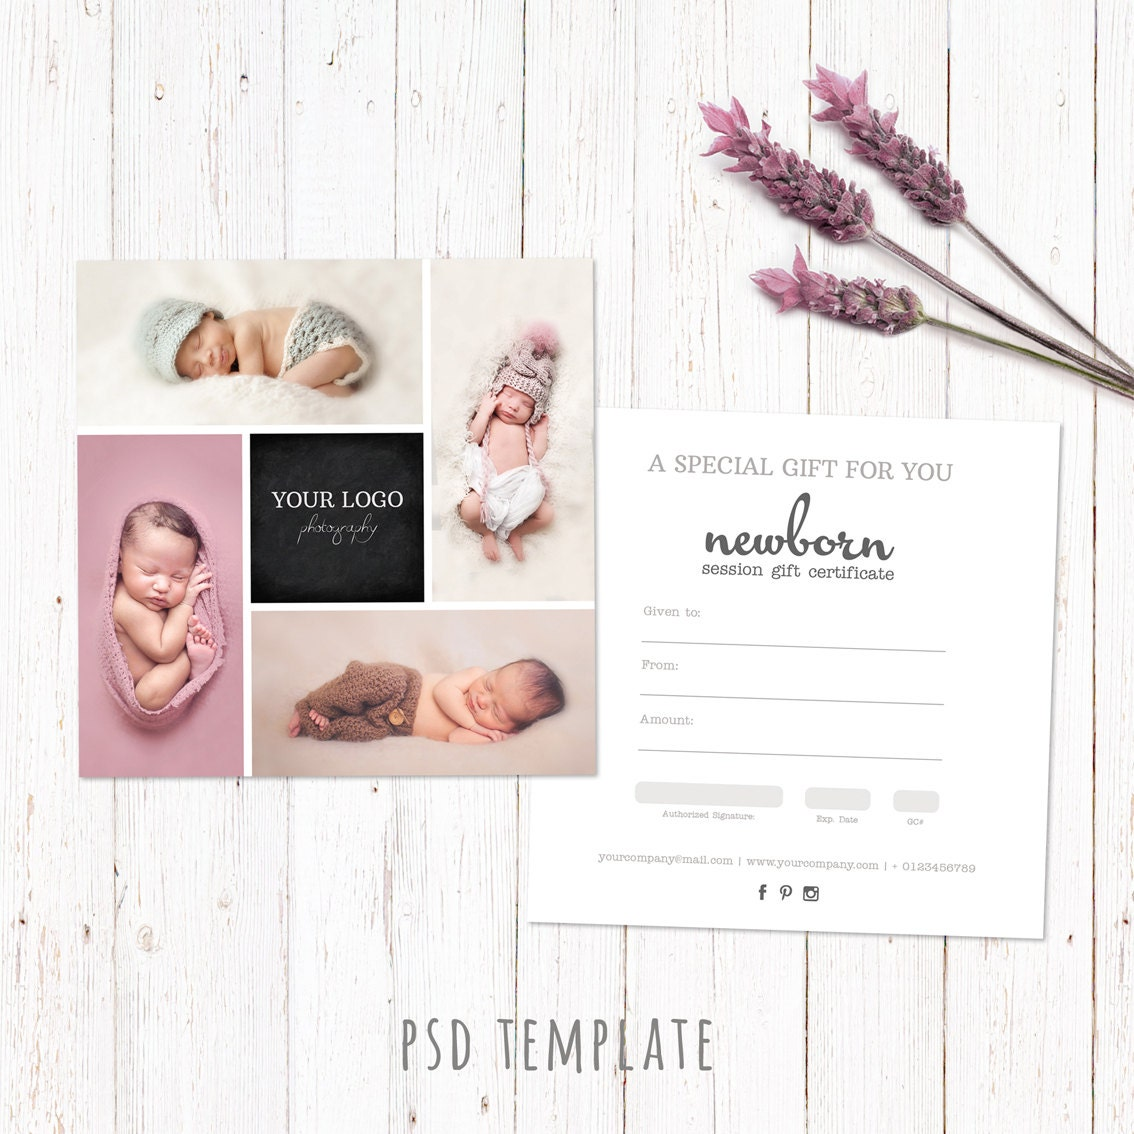 photoshoot gift certificate template - gift certificate template newborn session photography gift